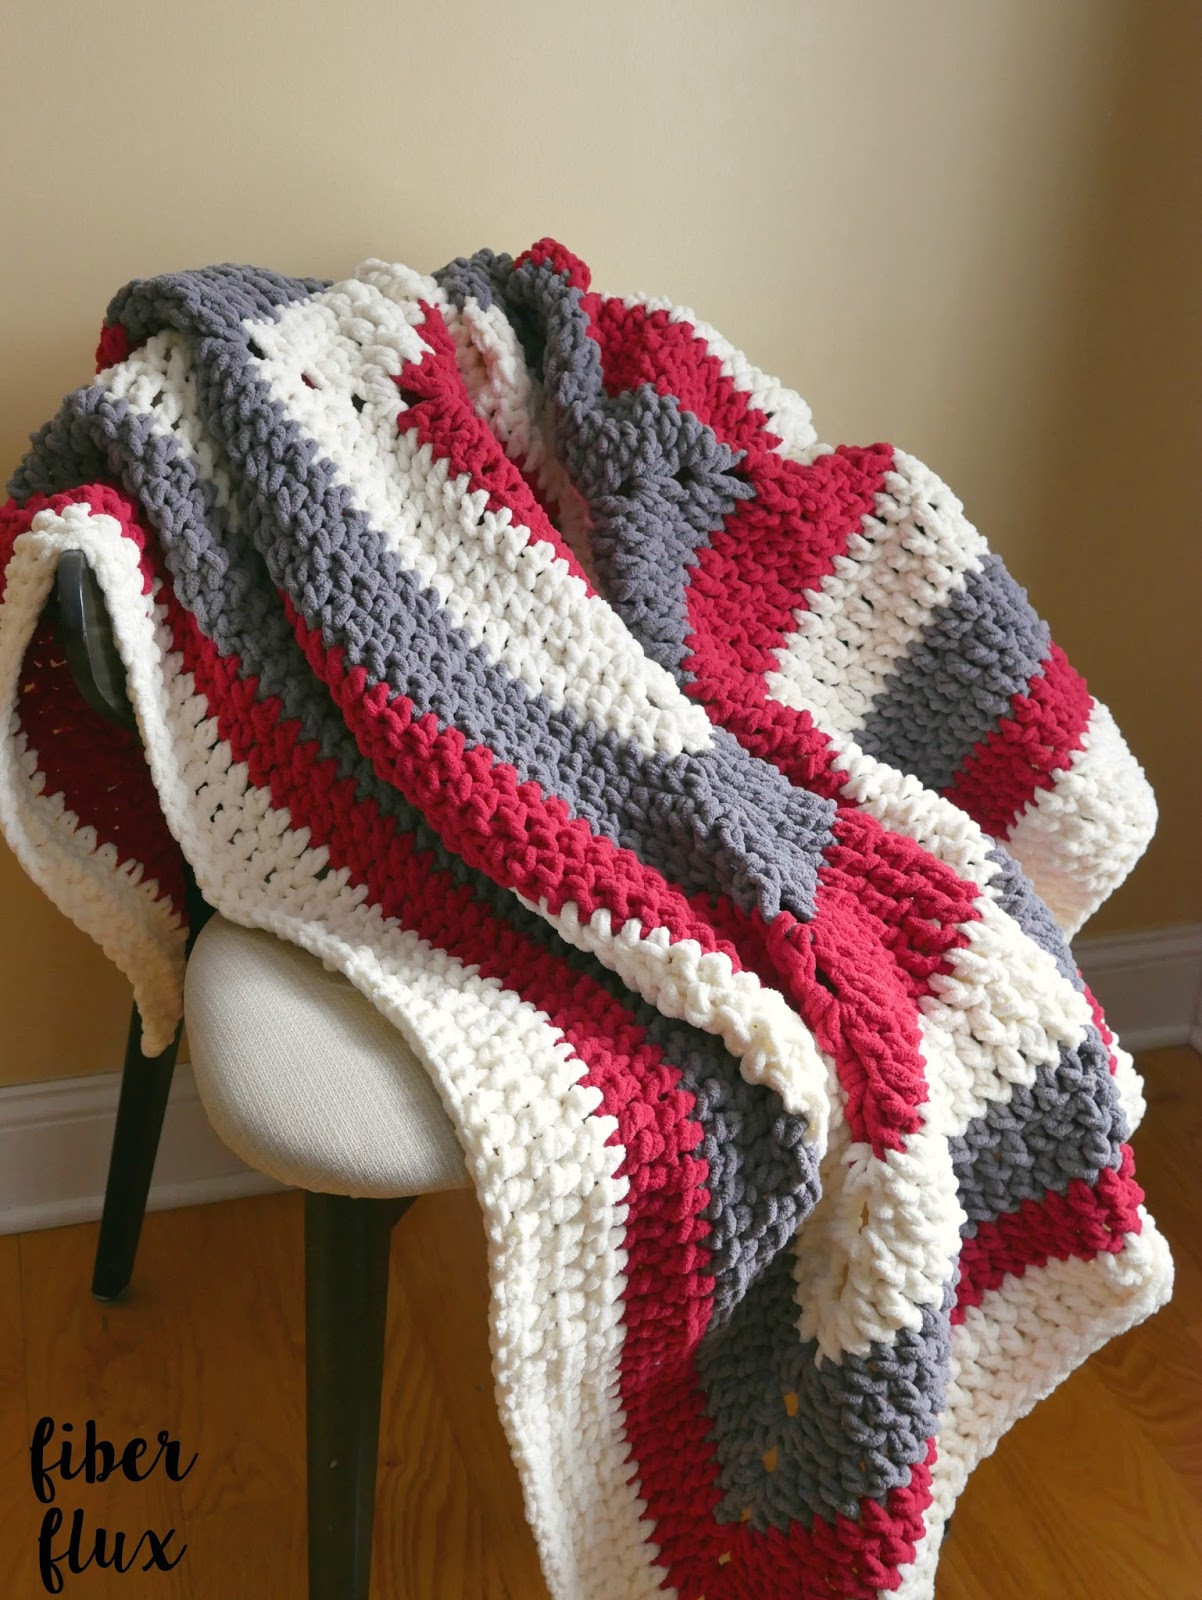 Best Of Fiber Flux Free Crochet Pattern Snow Berries Throw Free Crochet Of Contemporary 42 Ideas Free Crochet